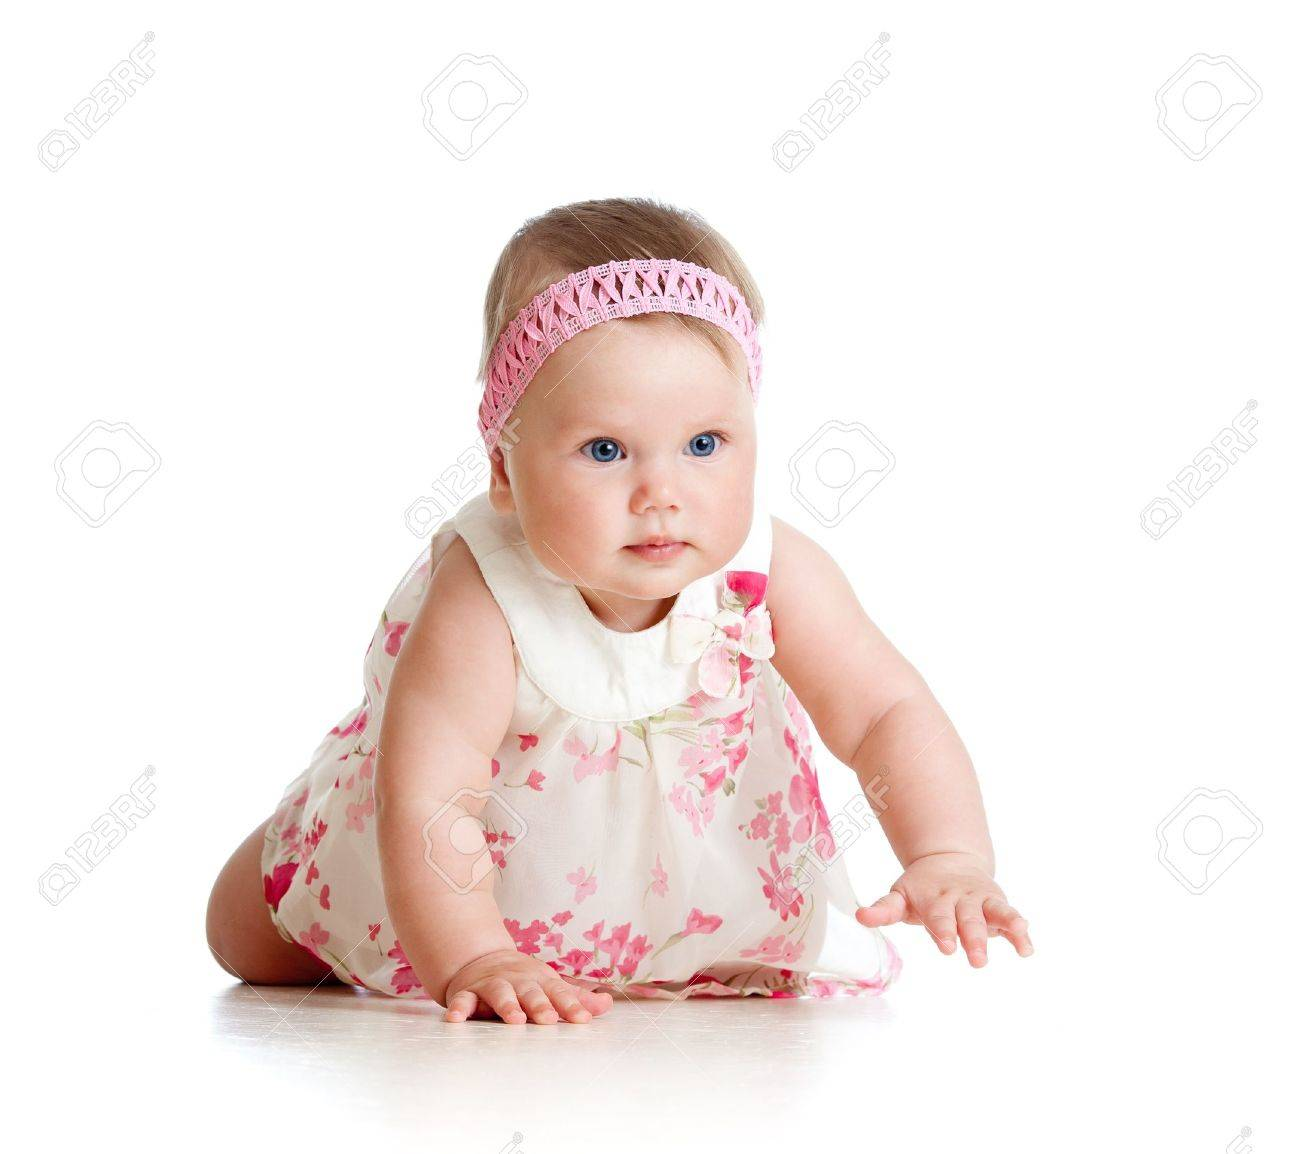 pretty baby girl crawling on floor stock photo, picture and royalty